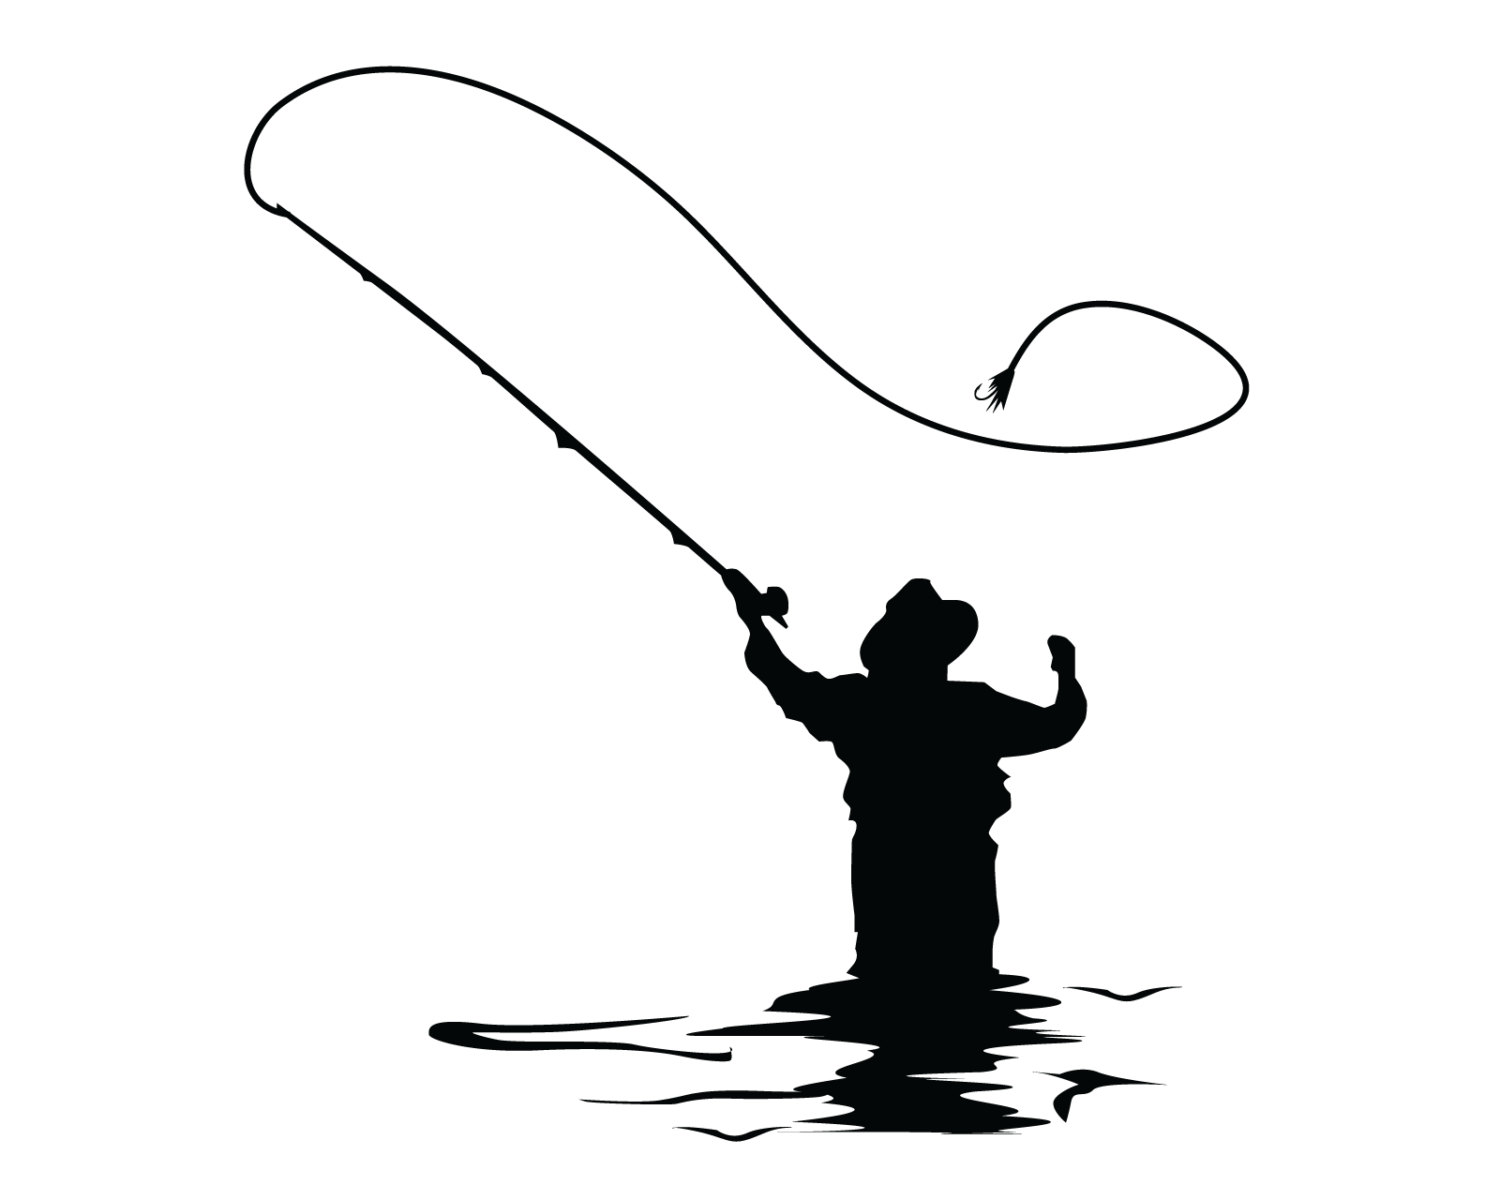 1500x1200 Fly Fishing Decal Fly Fish Sticker Outdoorsman Flyfishing